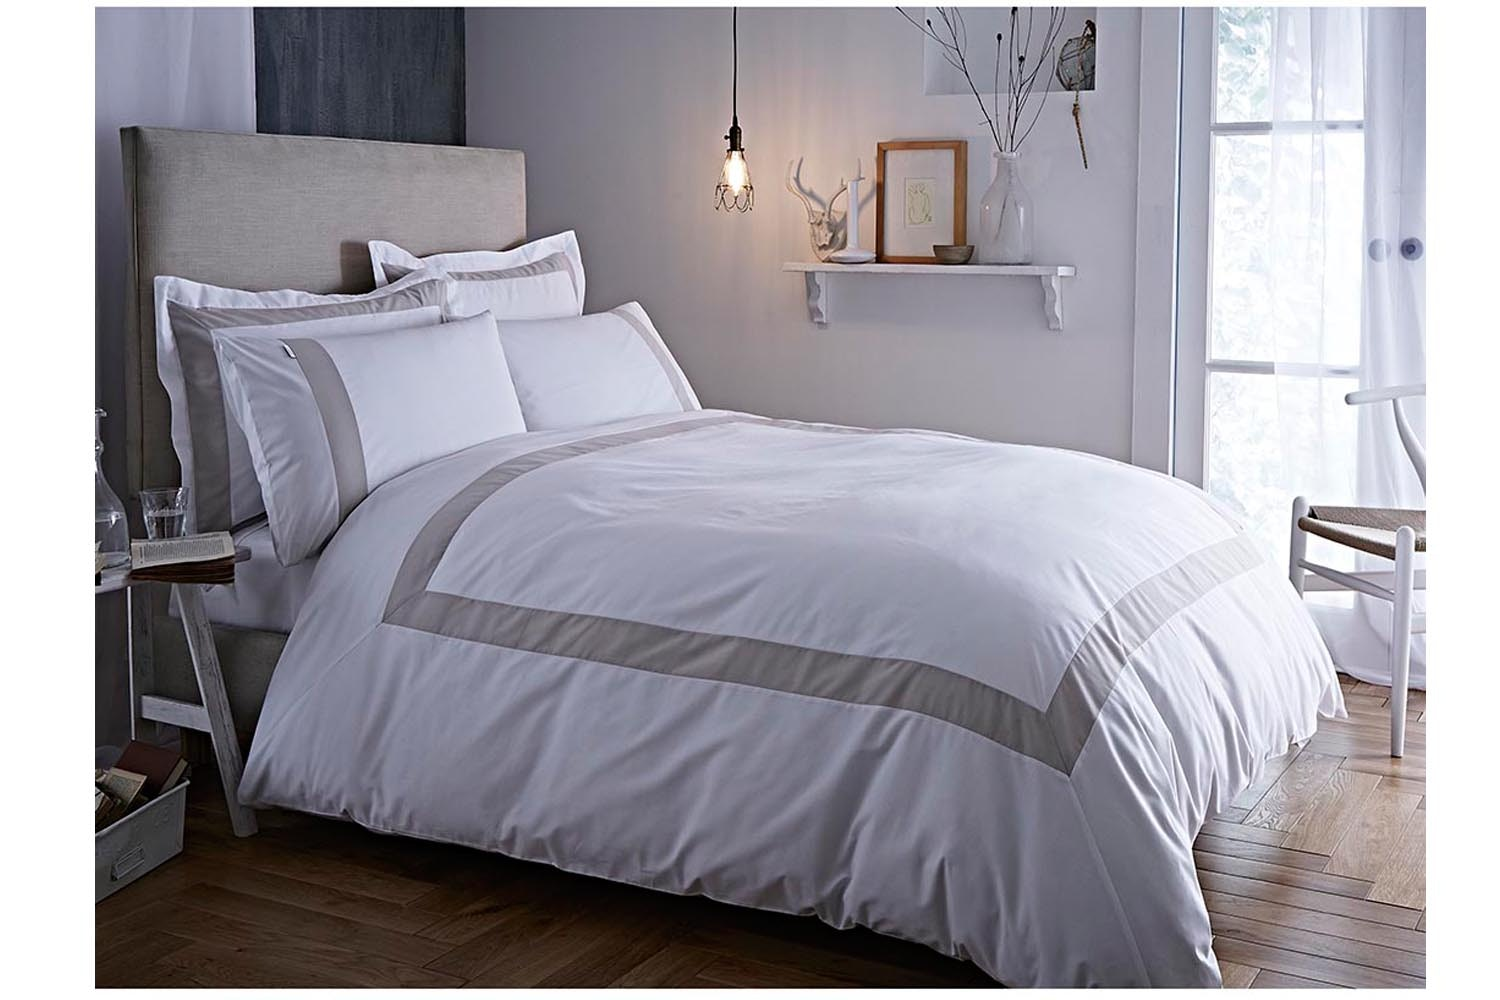 BDB35766RDQSN,Tailored, Natural ,Quiltset, Double,duvet,cover,